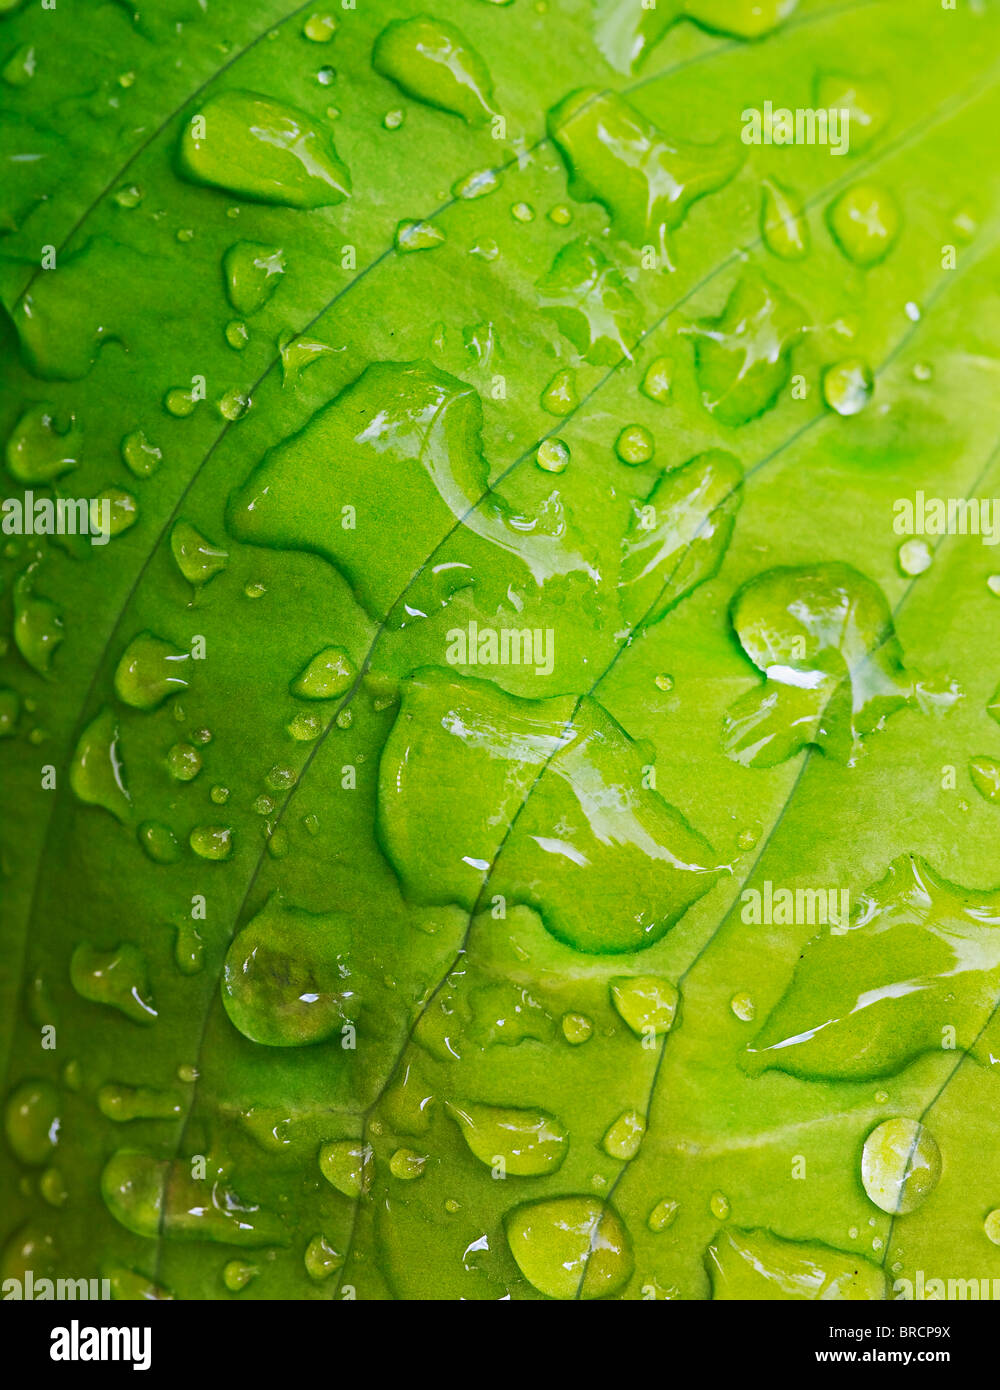 green leaf covered with rain drops - Stock Image